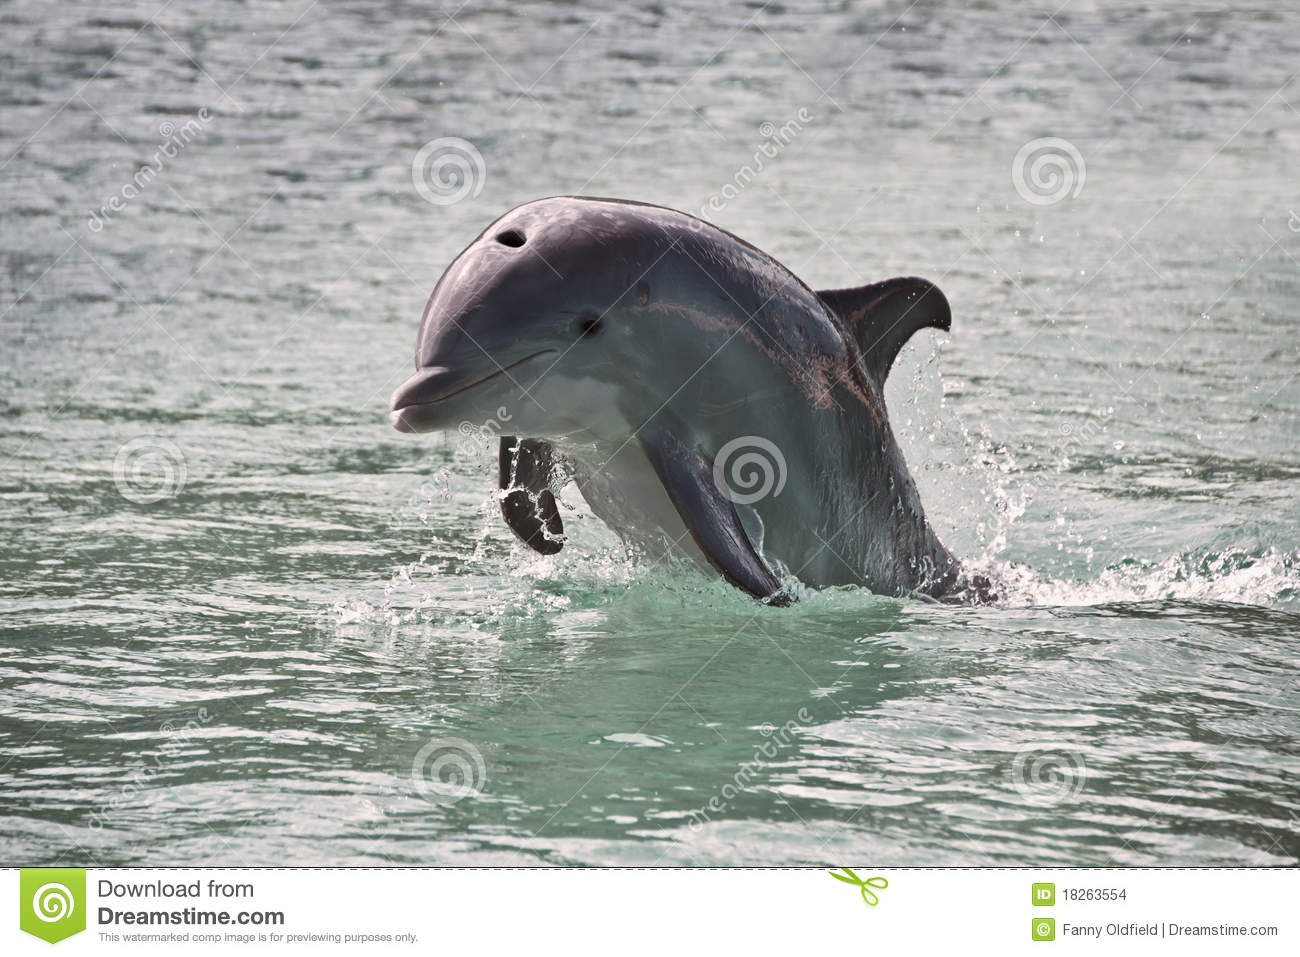 Dolphin Stock Images - Image: 18263554